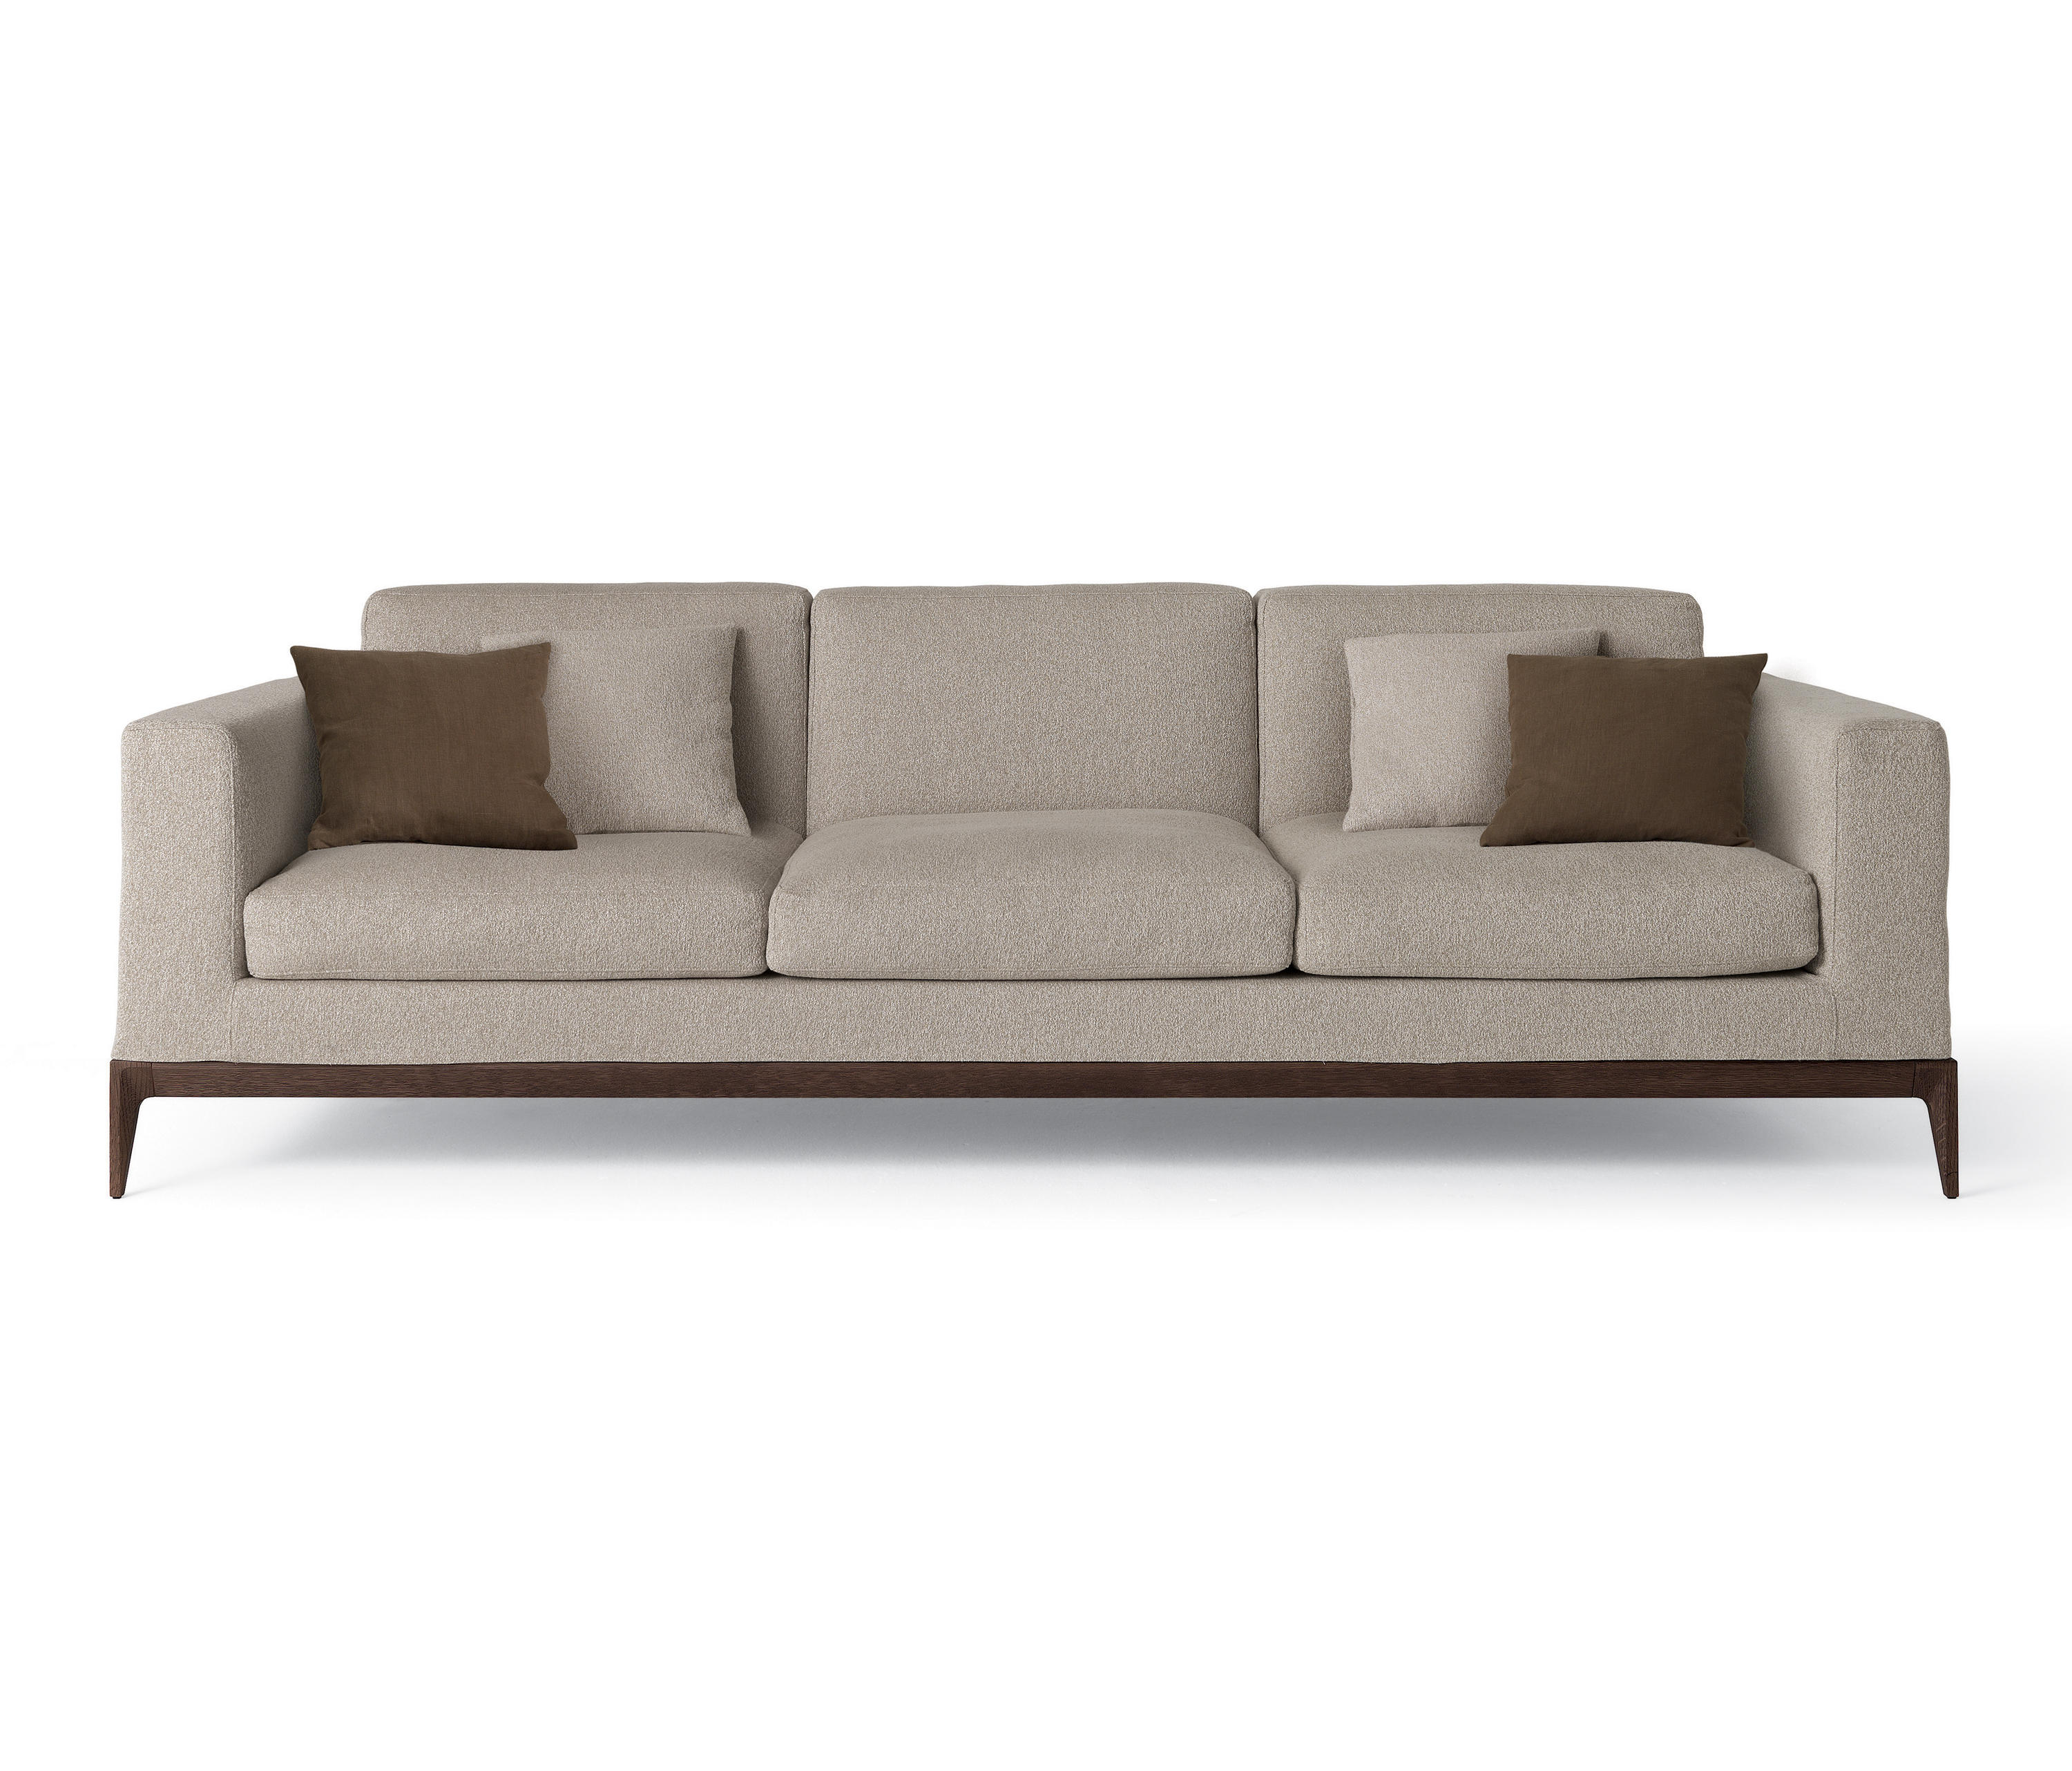 antibes sofas from misura emme architonic